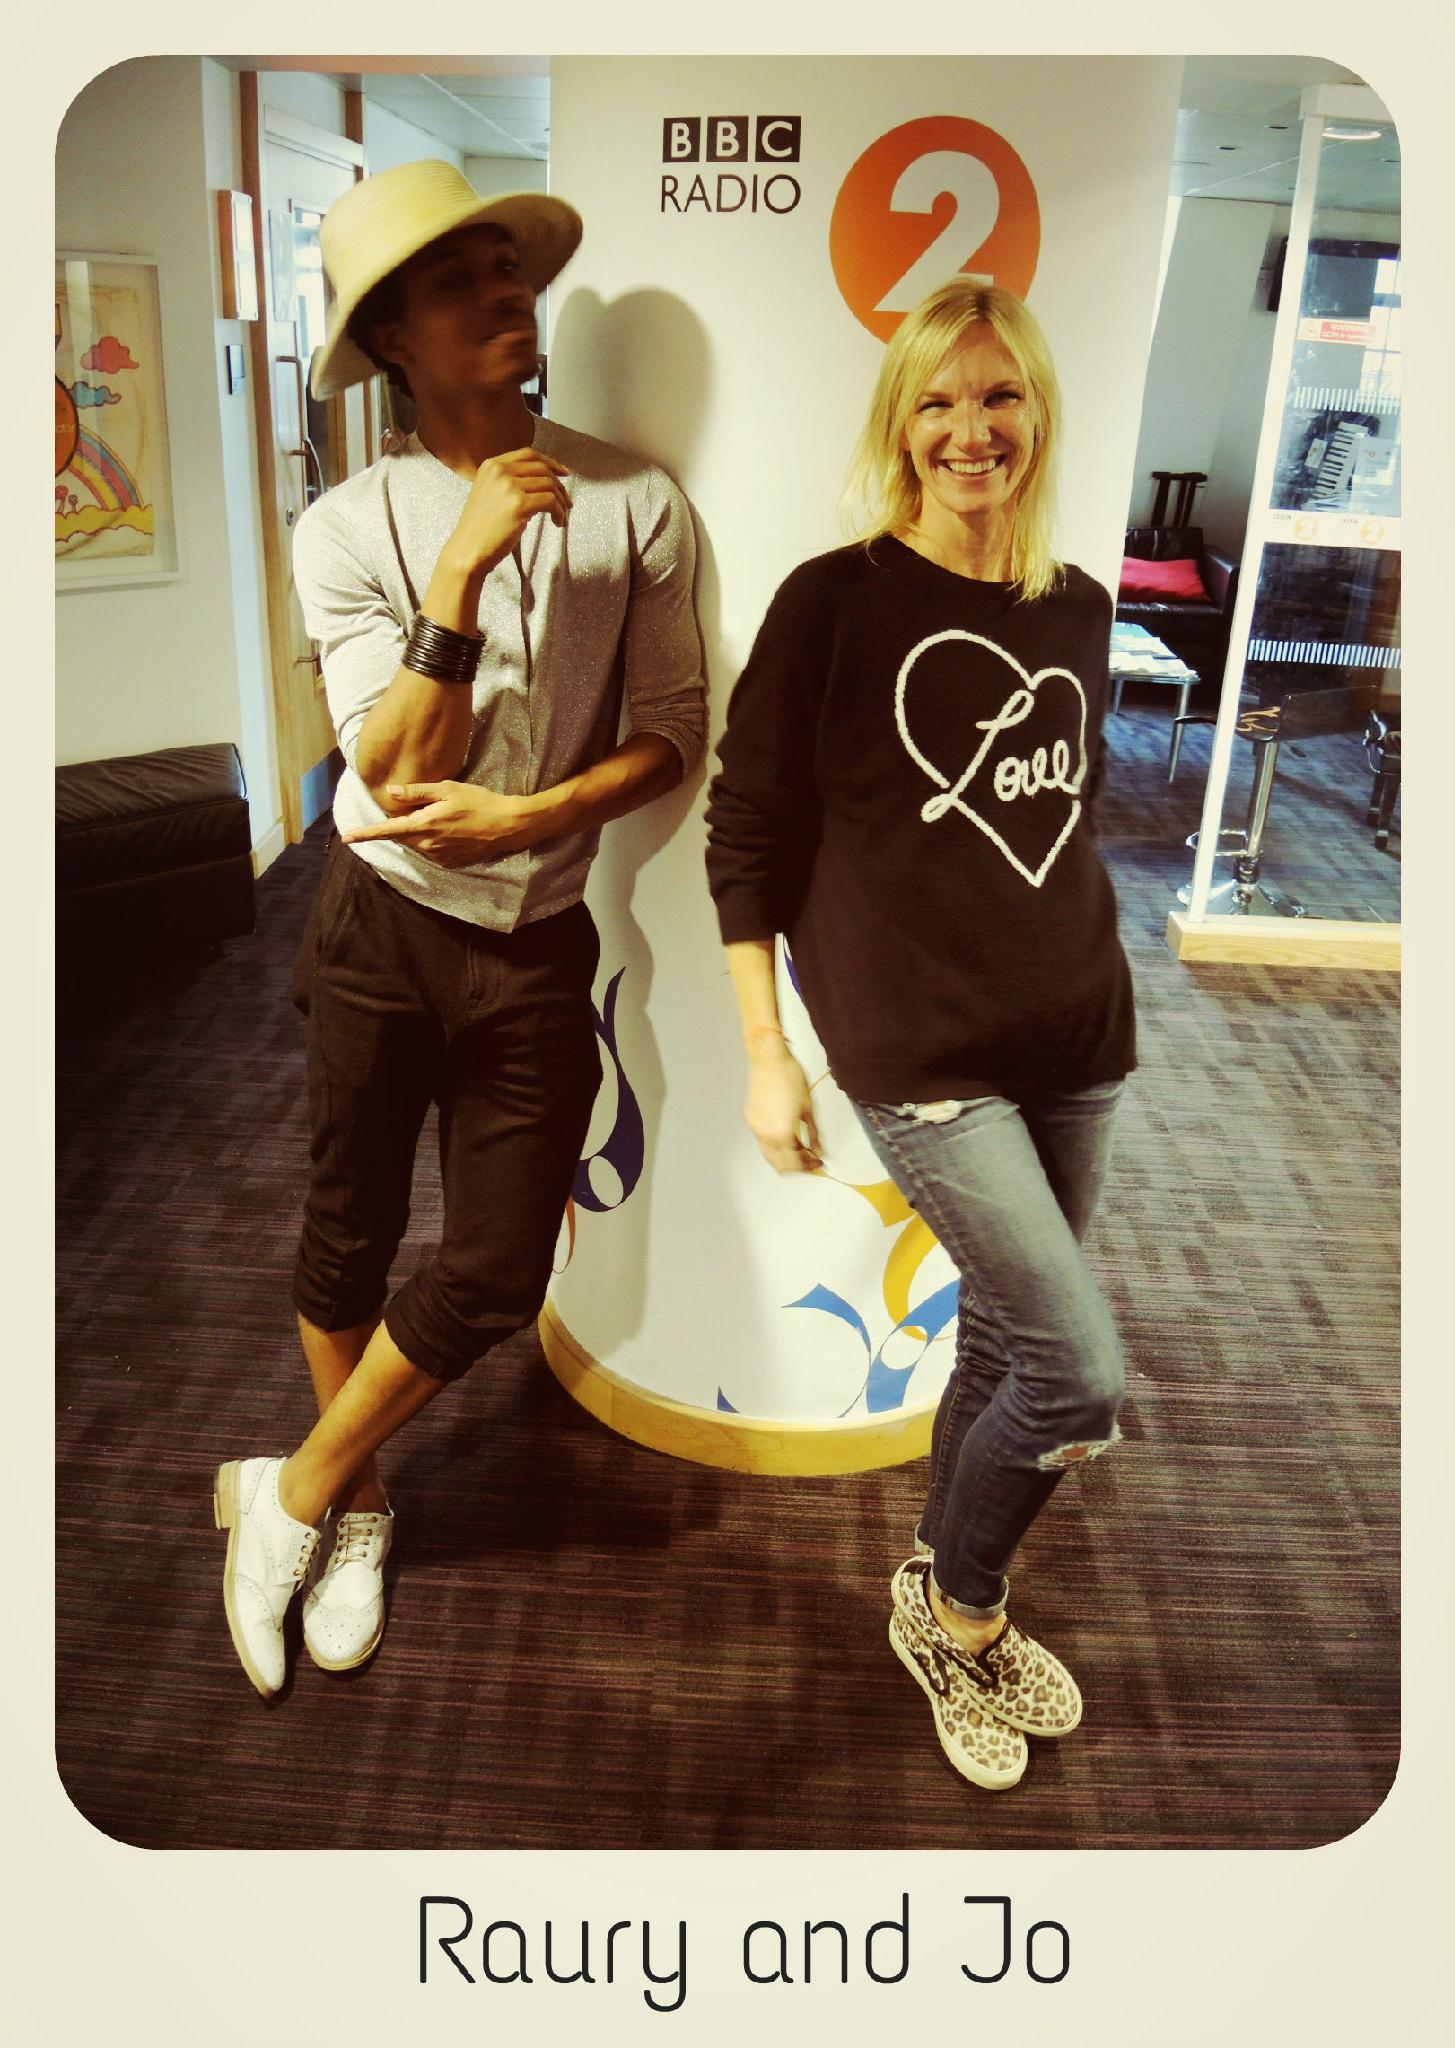 RT @BBCRadio2: A week of legends, old and new with @jowhiley this week - @raury today and Status Quo tomorrow http://t.co/K3vy0JkwZf